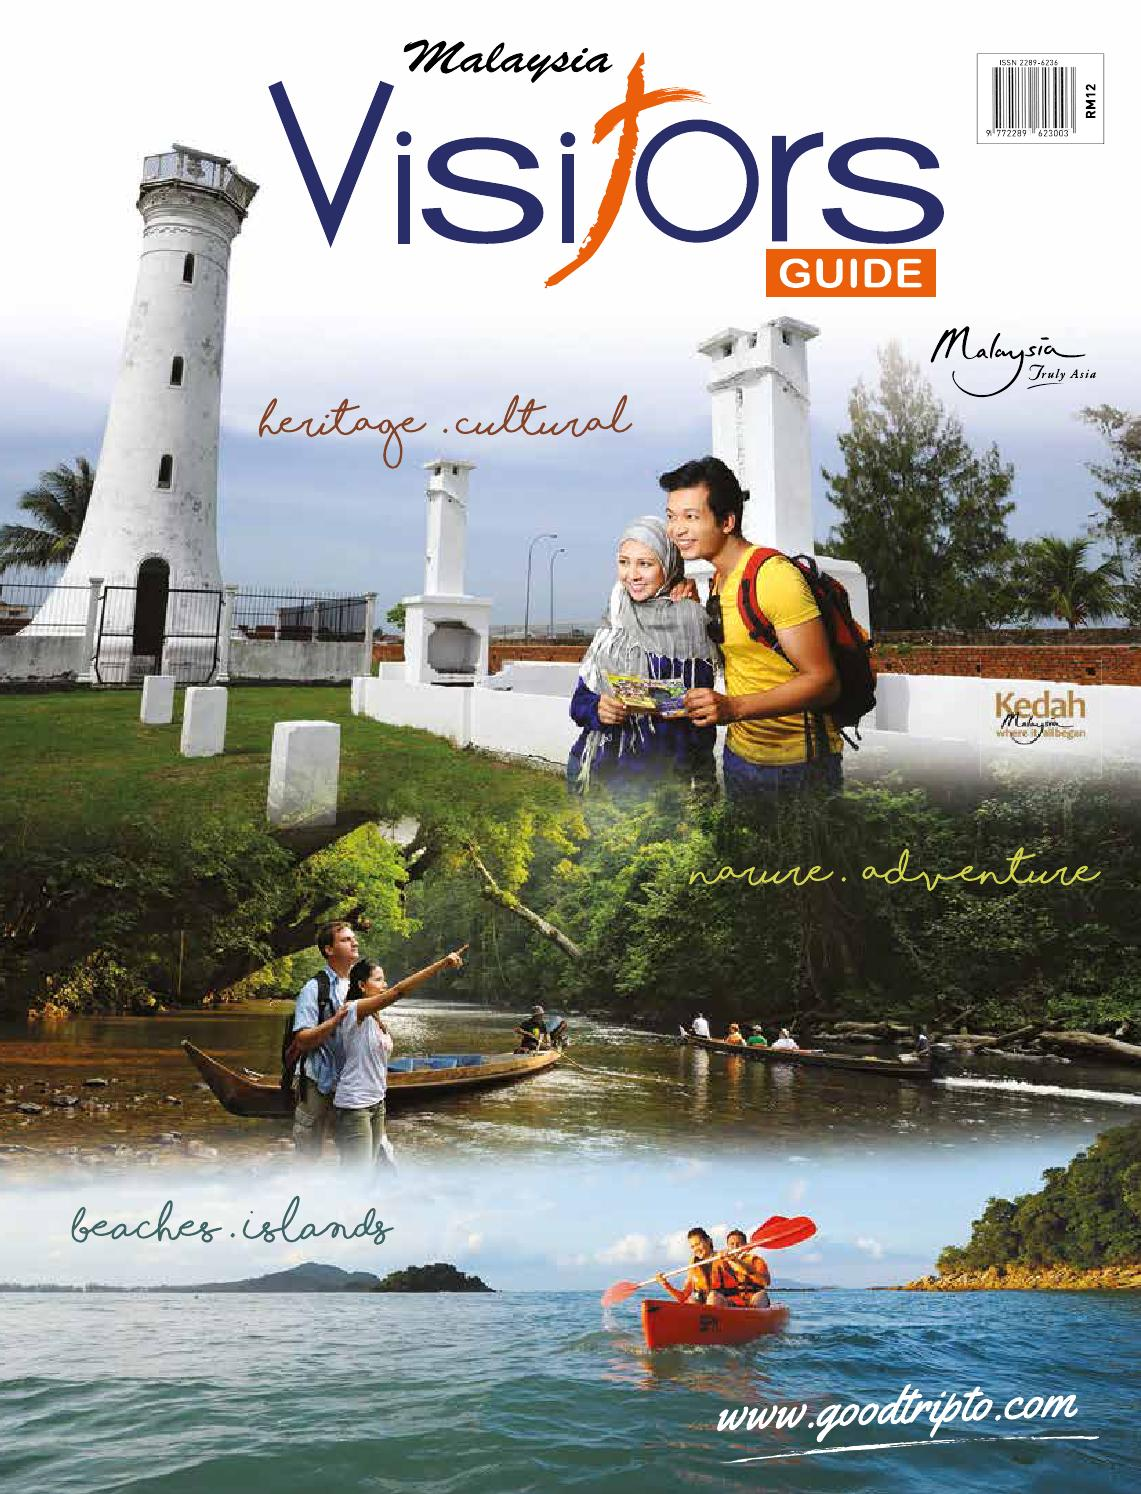 Malaysia Visitors Guide 2016 27th Edition By Tourism Publications Police 14796jsu 02 Hitam Jarum Orange Corporation Sdn Bhd Issuu